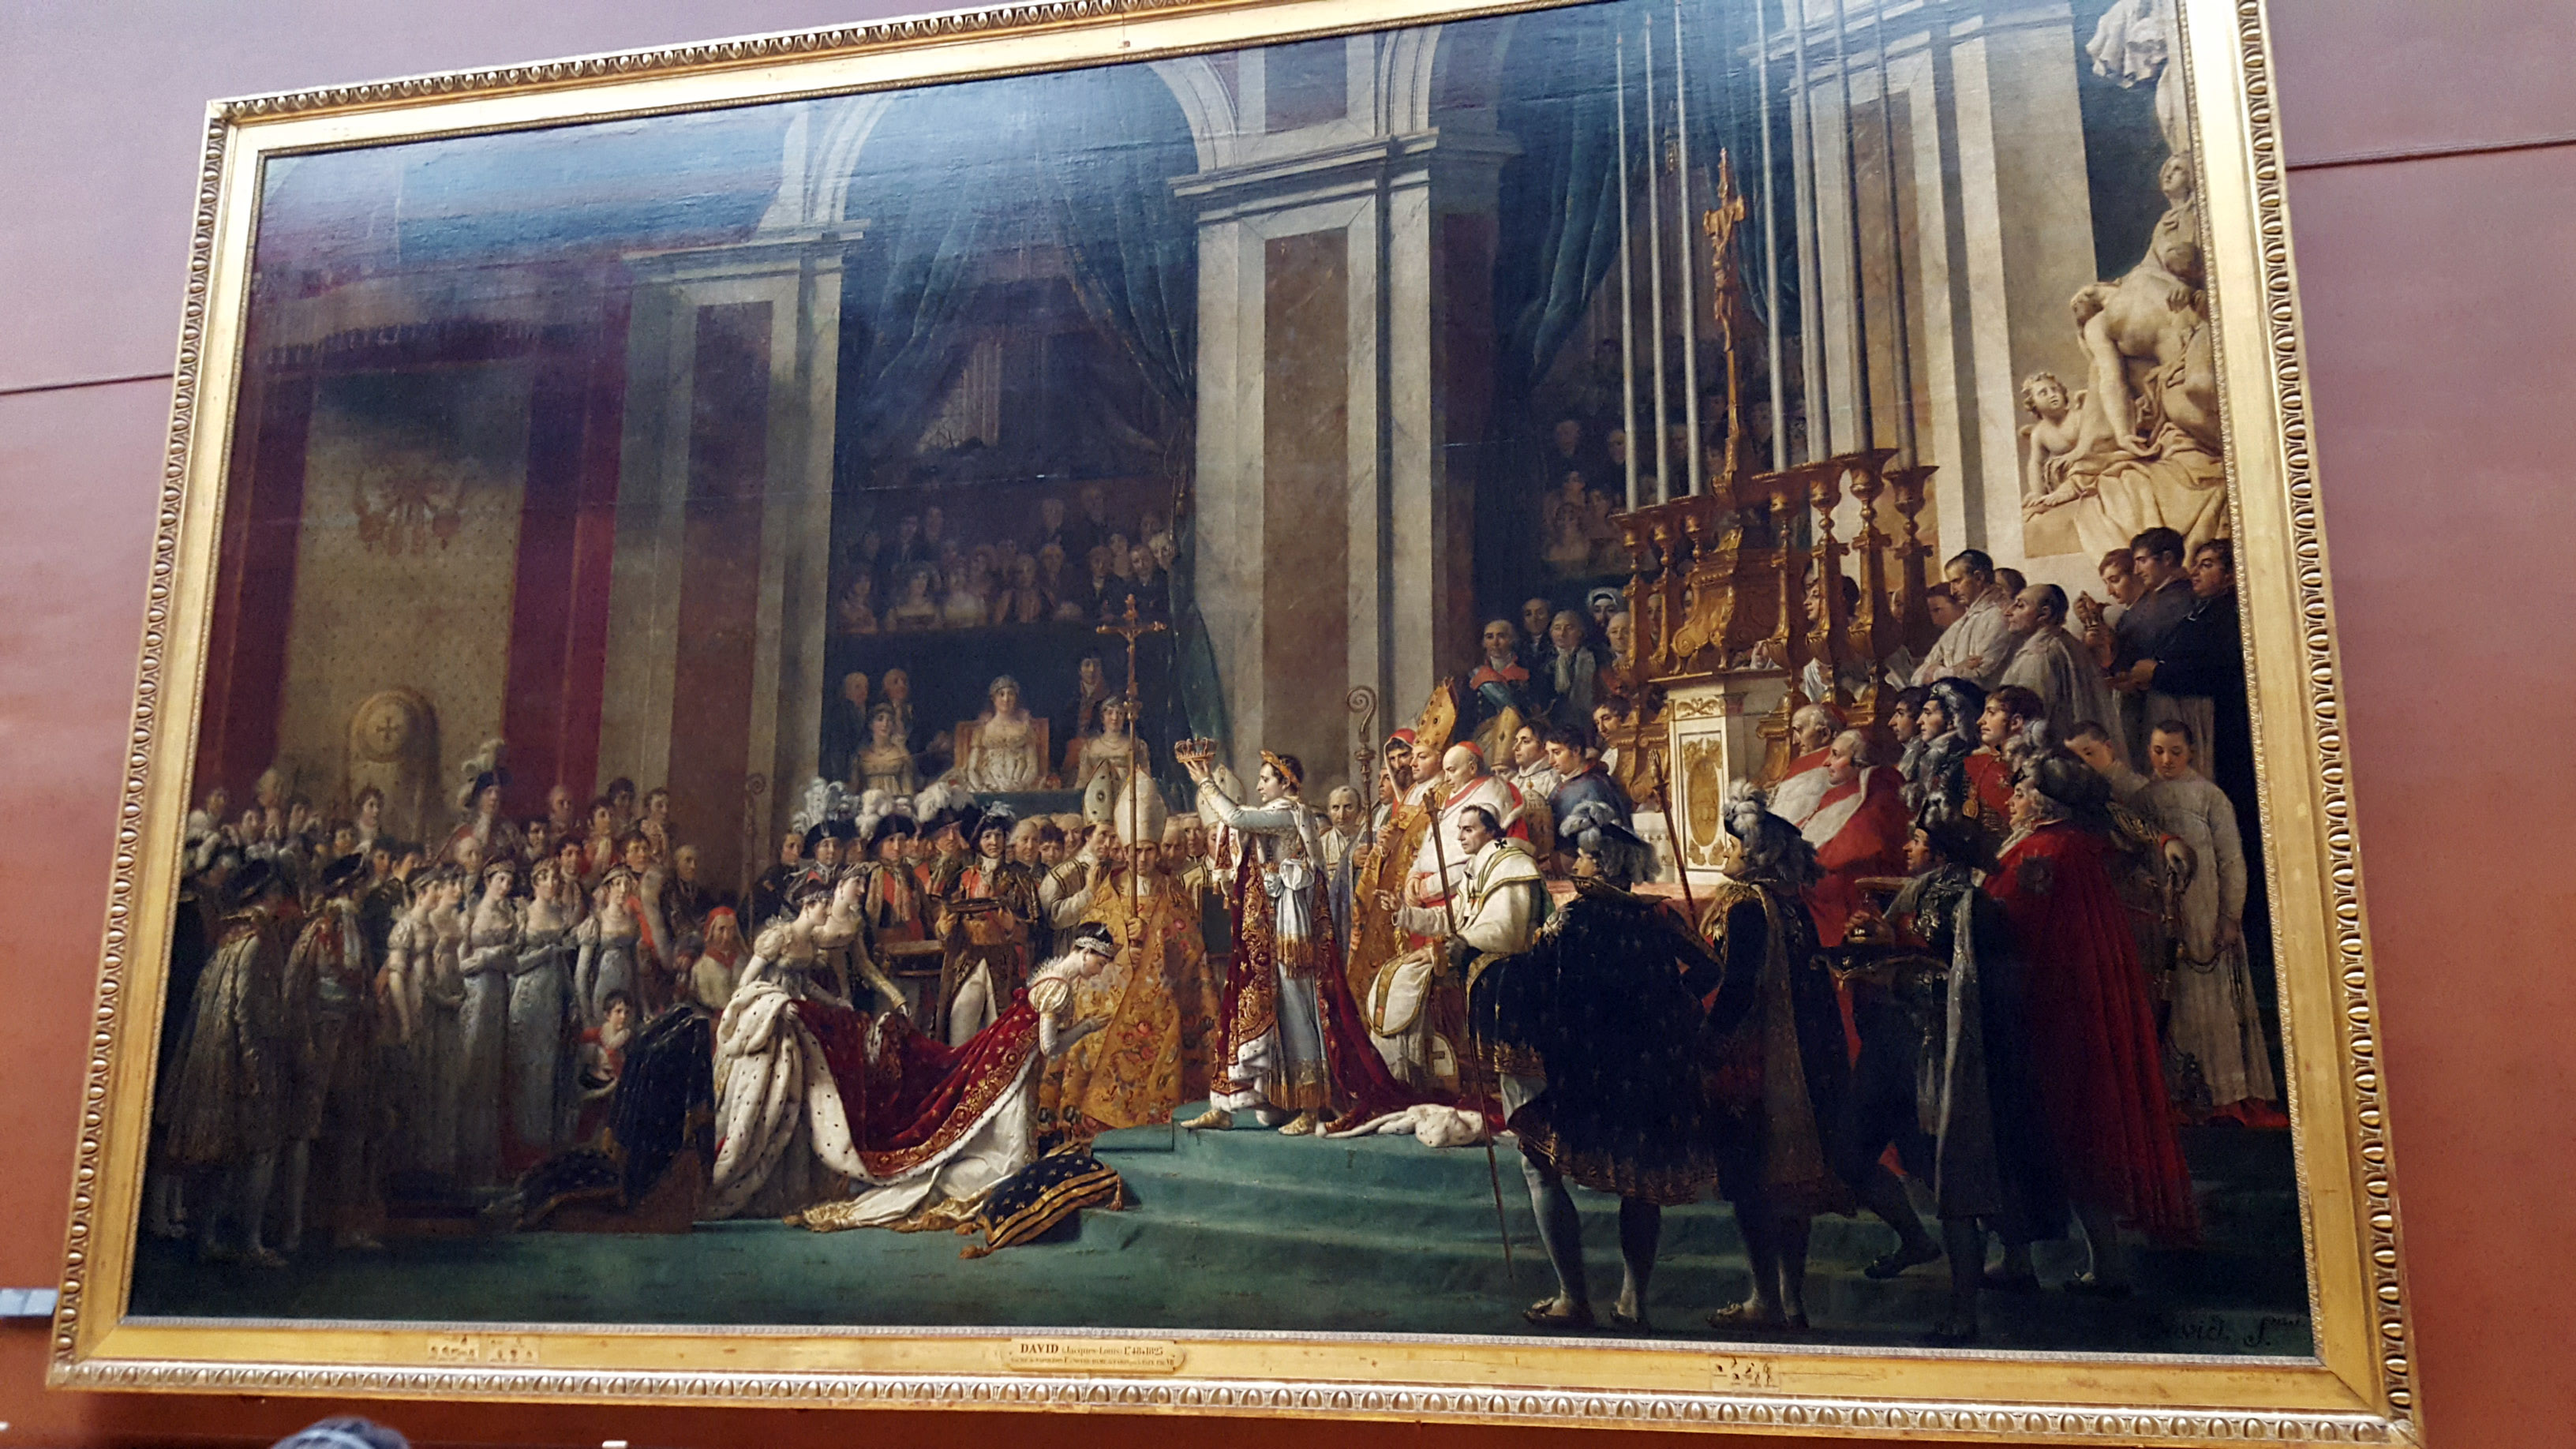 The Coronation of Napoleon in the Louvre in Paris, Frace